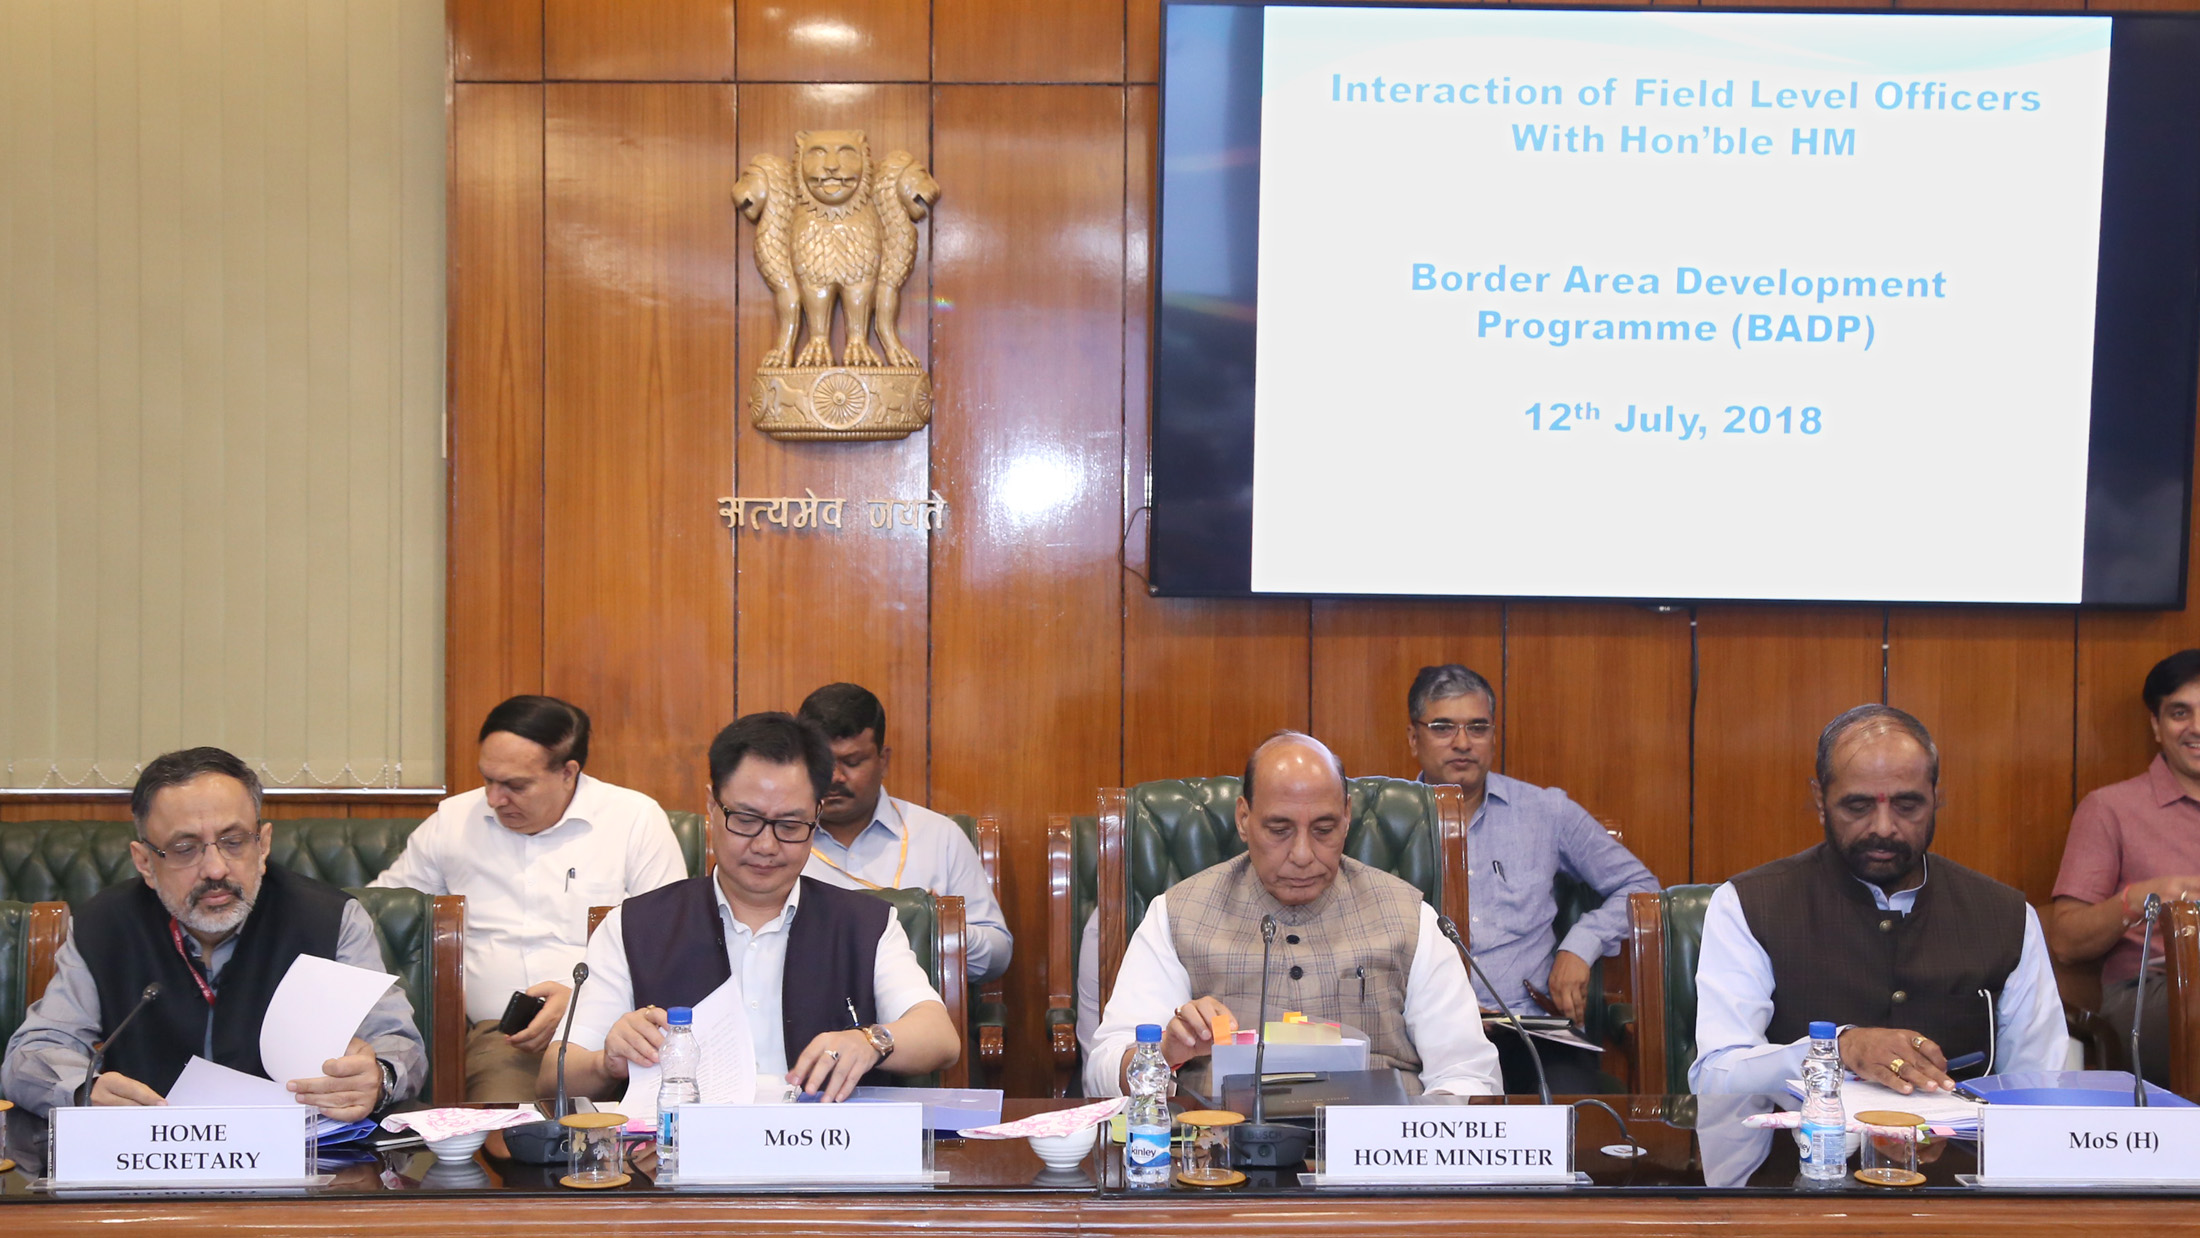 The Union Home Minister, Shri Rajnath Singh chairing an Interaction with the Field Level Officers to review the Border Area Development Programme (BADP), in New Delhi on July 12, 2018. The Ministers of State for Home Affairs, Shri Hansraj Gangaram Ahir and Shri Kiren Rijiju and the Union Home Secretary, Shri Rajiv Gauba are also seen.